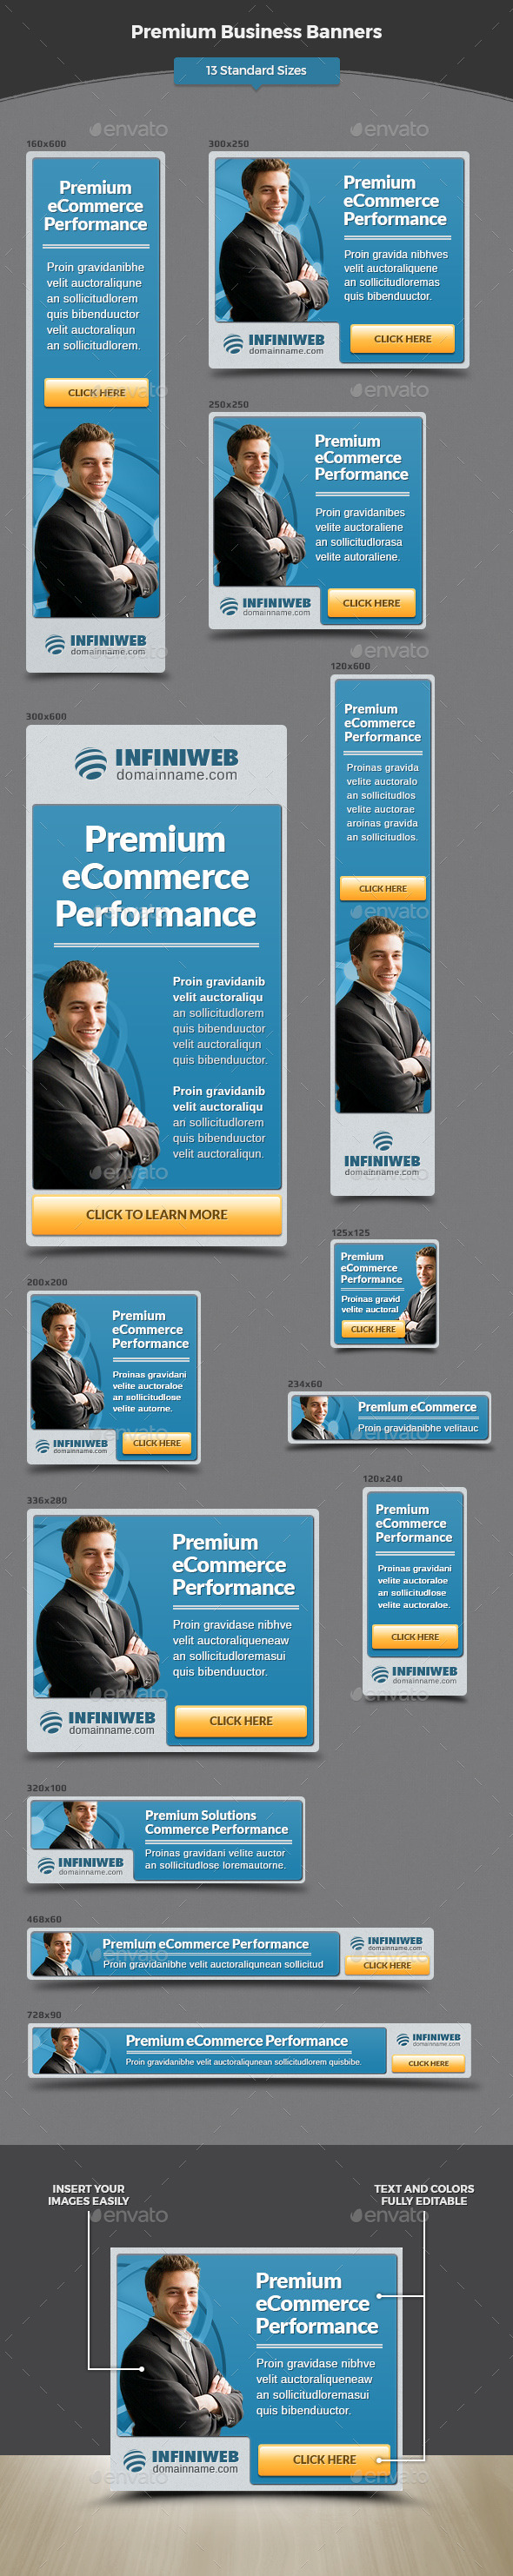 Premium Business Banners